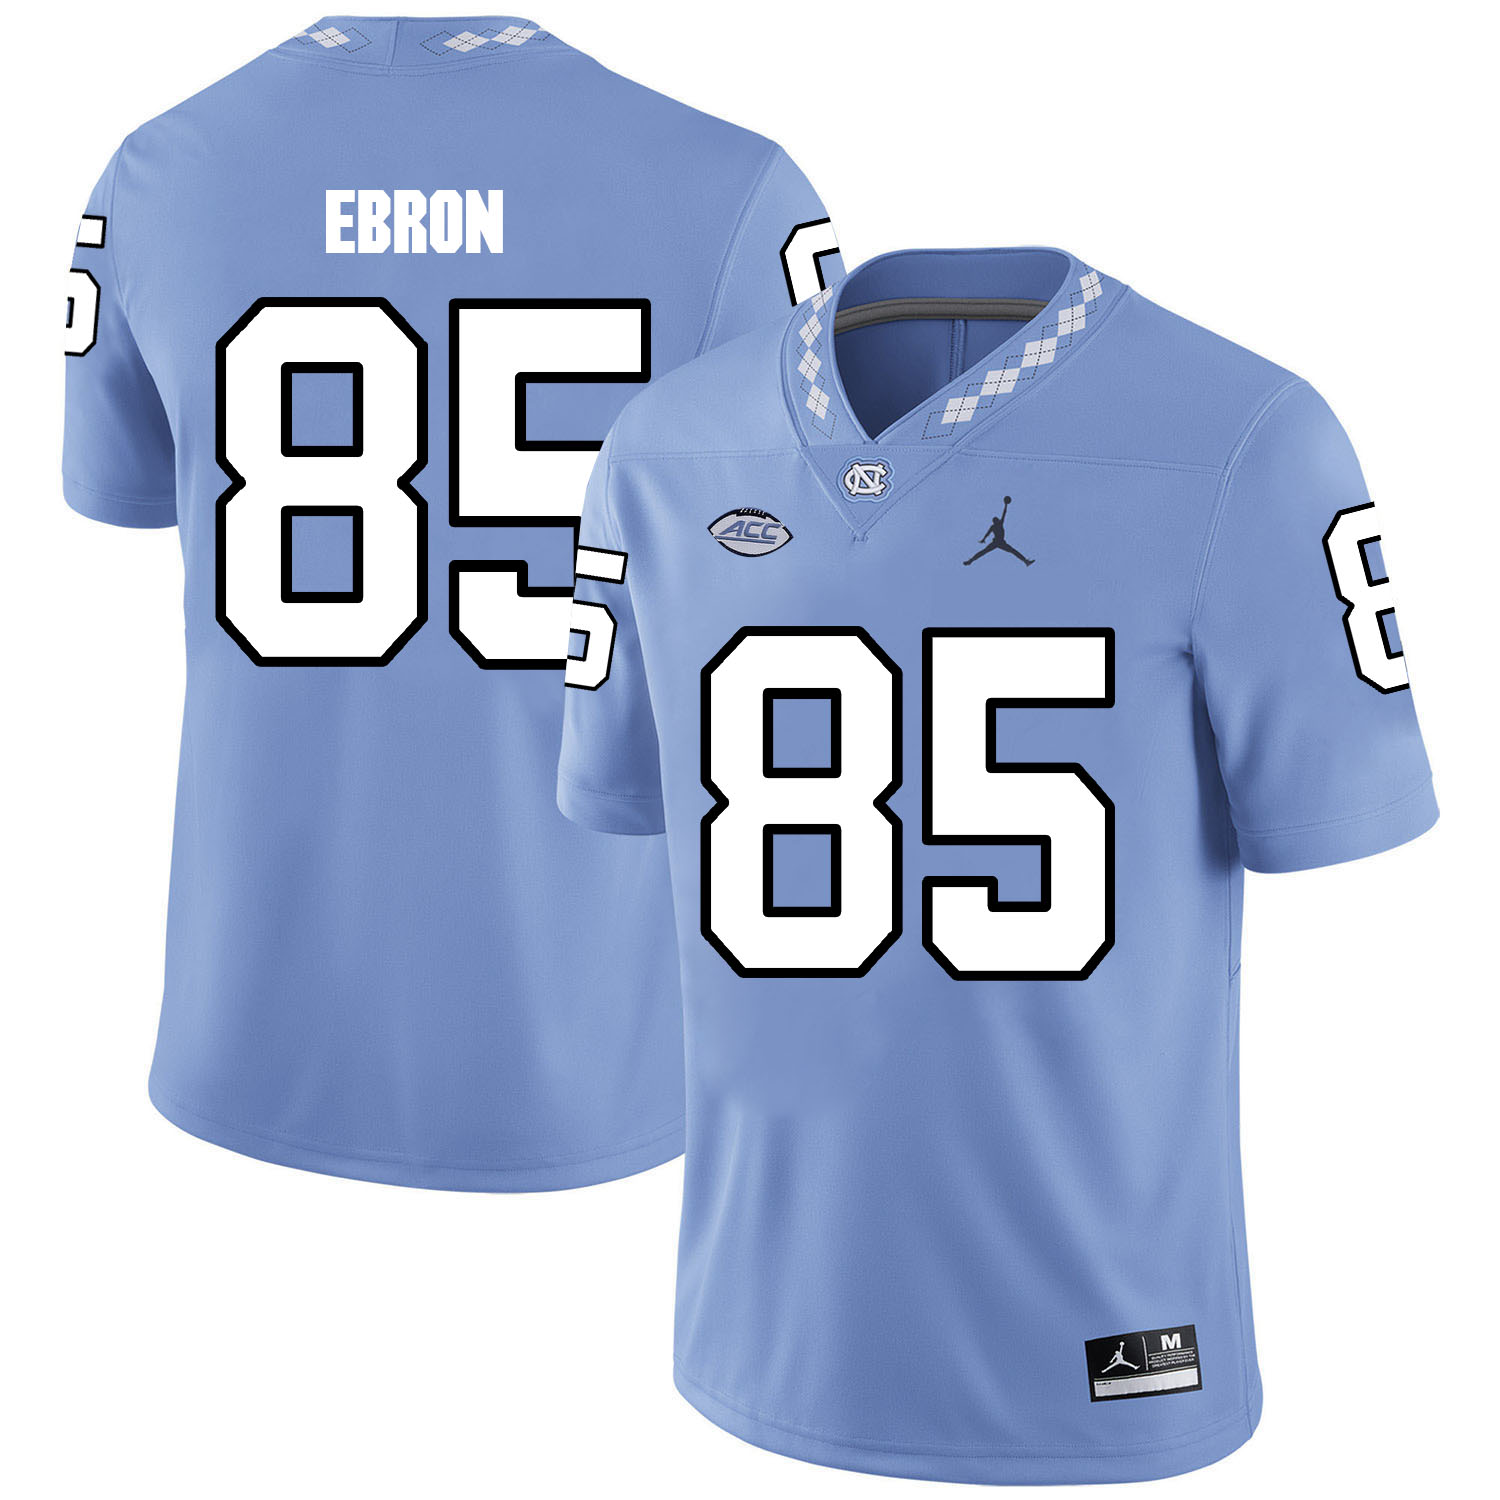 North Carolina Tar Heels 85 Eric Ebron Blue College Football Jersey